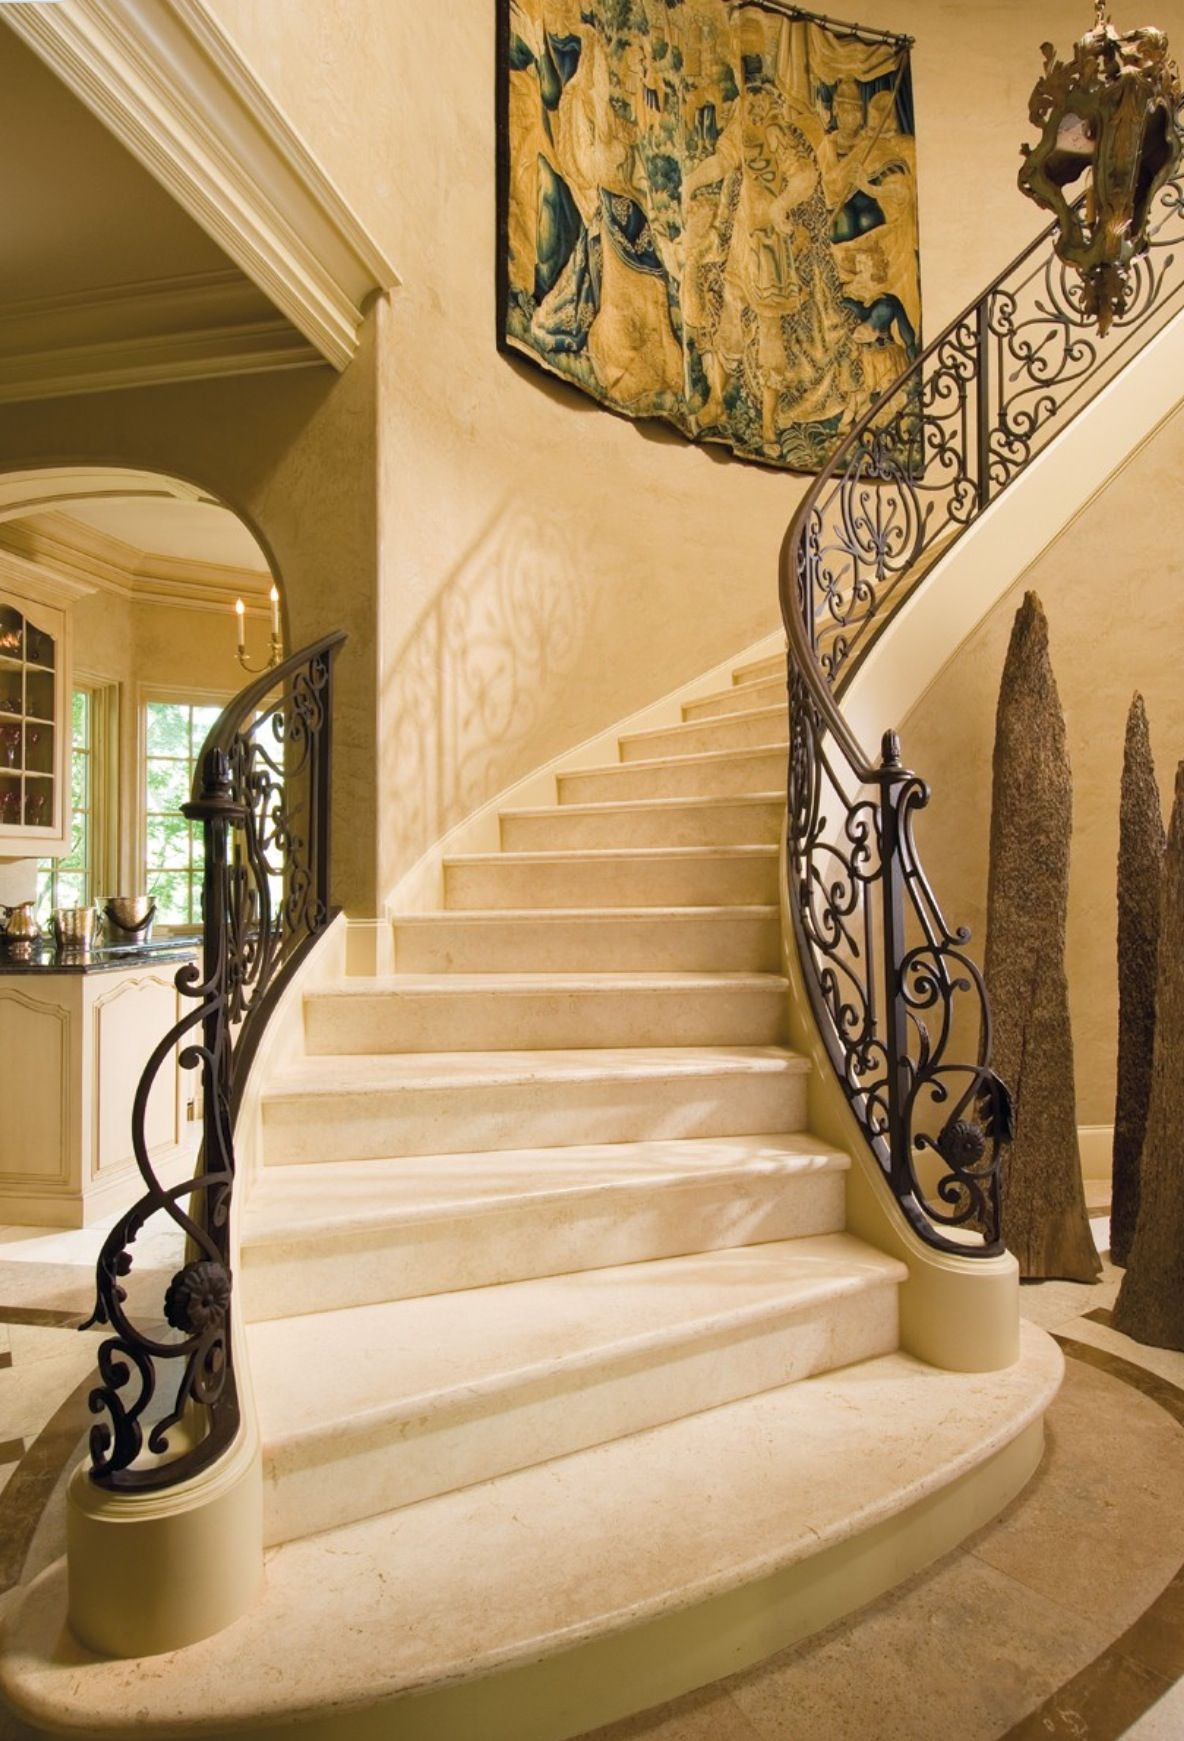 Luxury Foyer-Entrances-Stairs | Luxurydotcom via Houzz | Dream ...